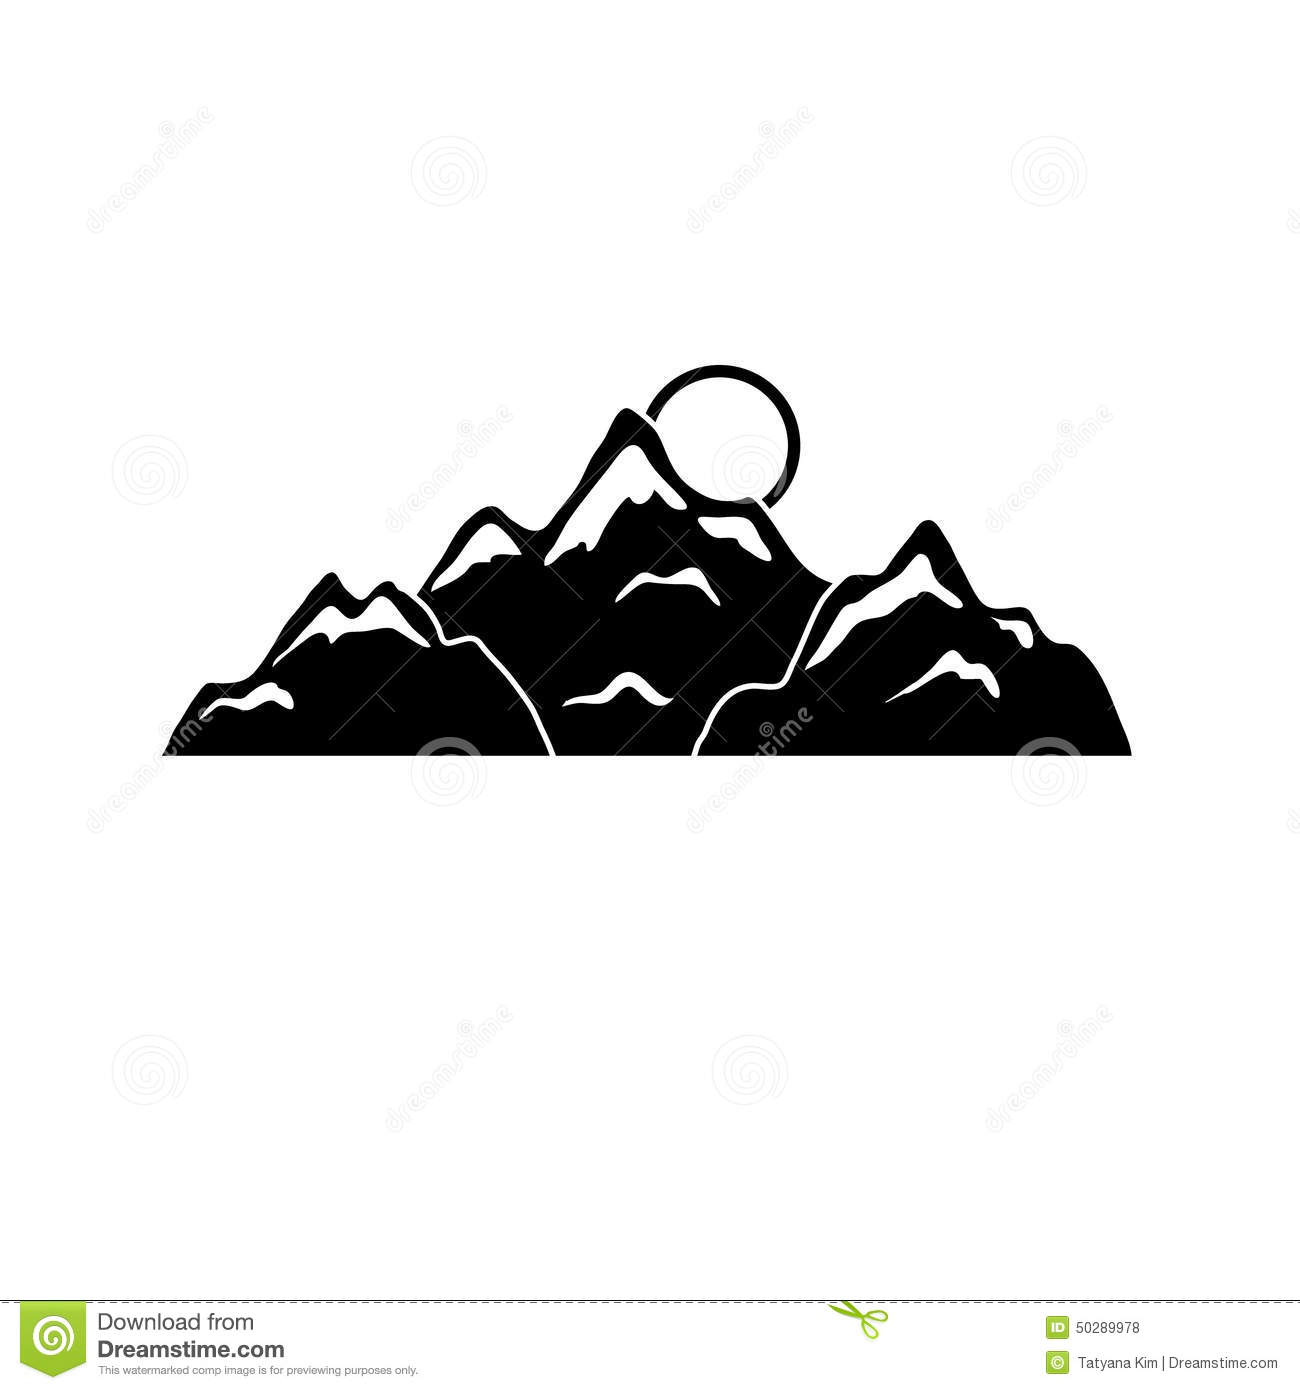 More similar stock images of ` Silhouettes of mountain for design `